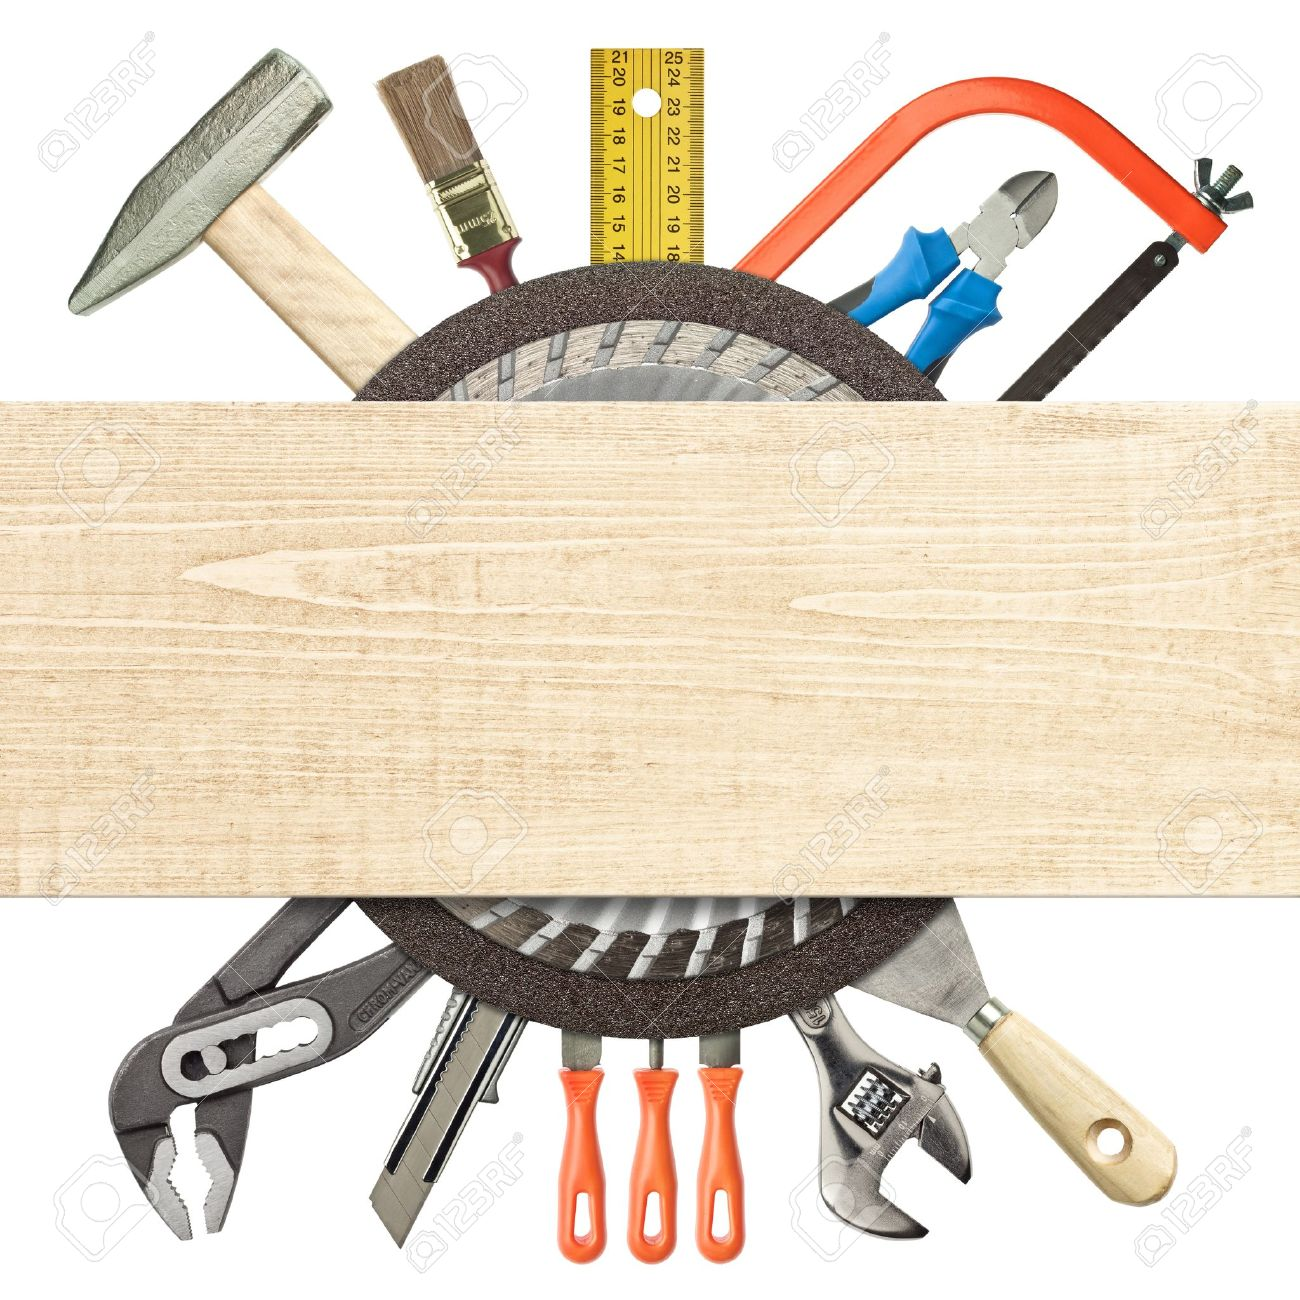 Carpentry, construction collage  Tools underneath wood plank Stock Photo - 18356760